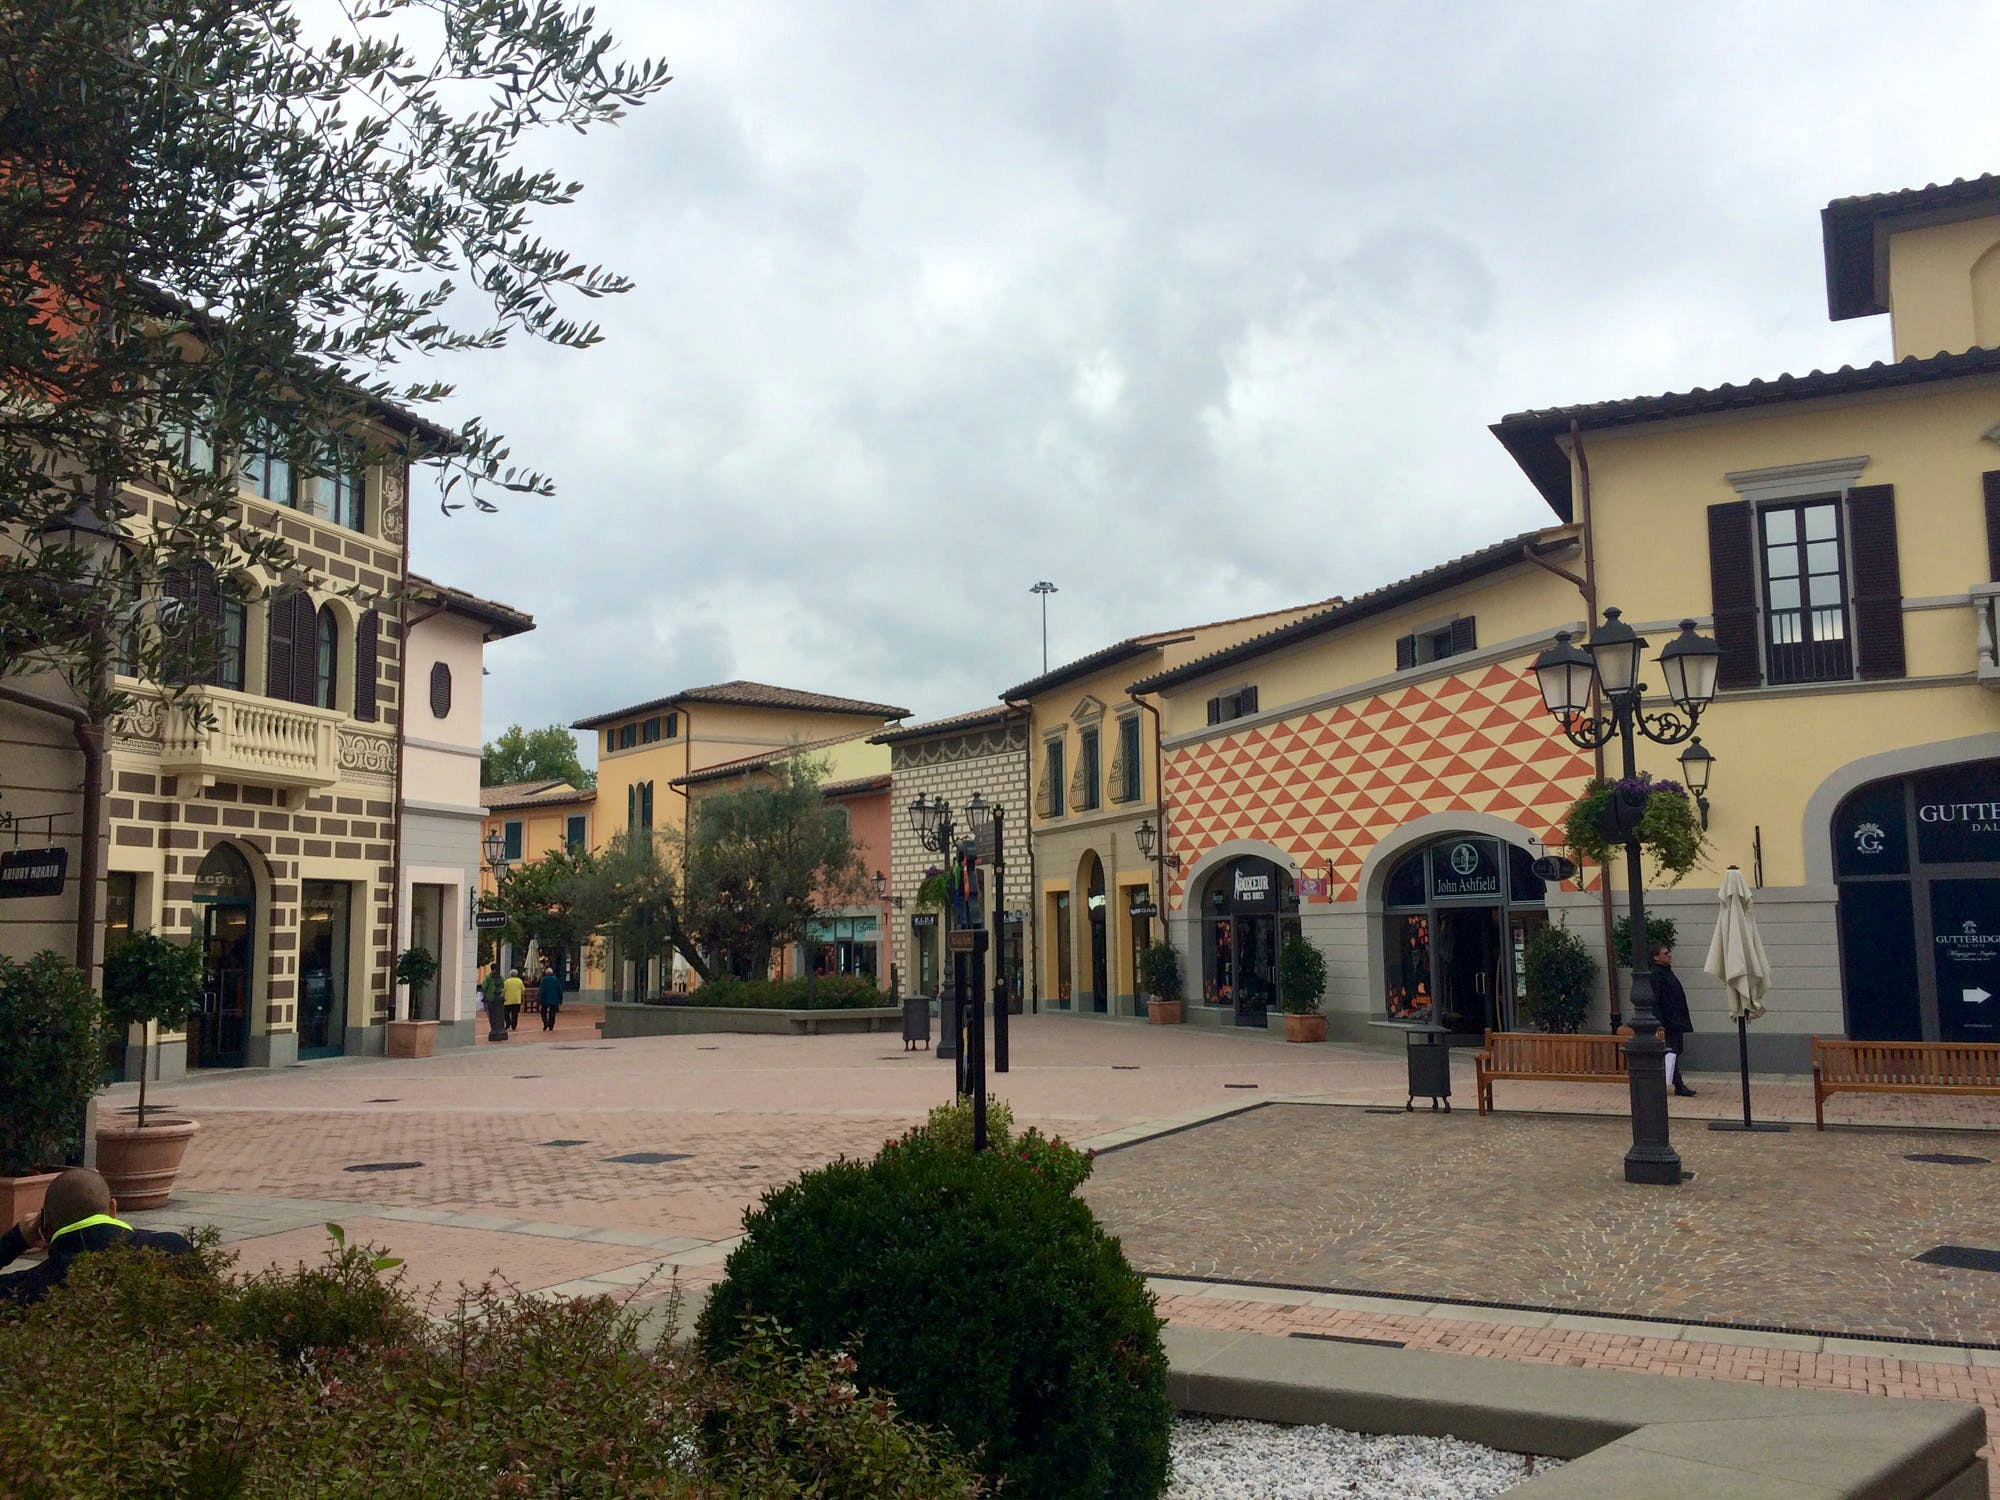 Outlet Toscana:Fare Shopping negli Spacci Aziendali in Toscana